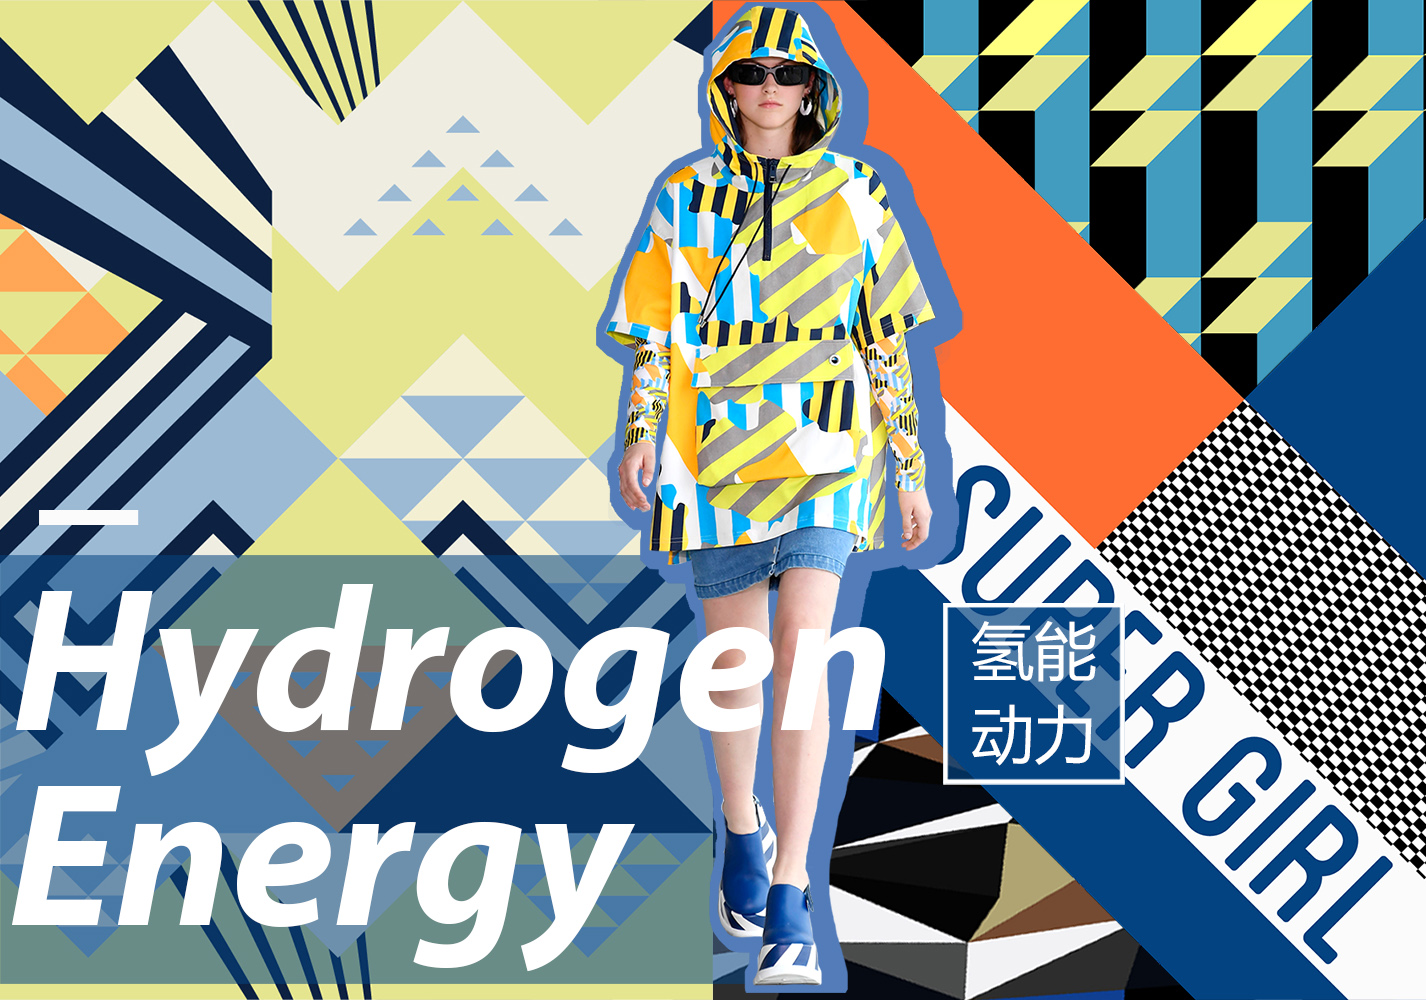 Hydrogen Energy -- 2020 S/S Pattern Trend for Womenswear